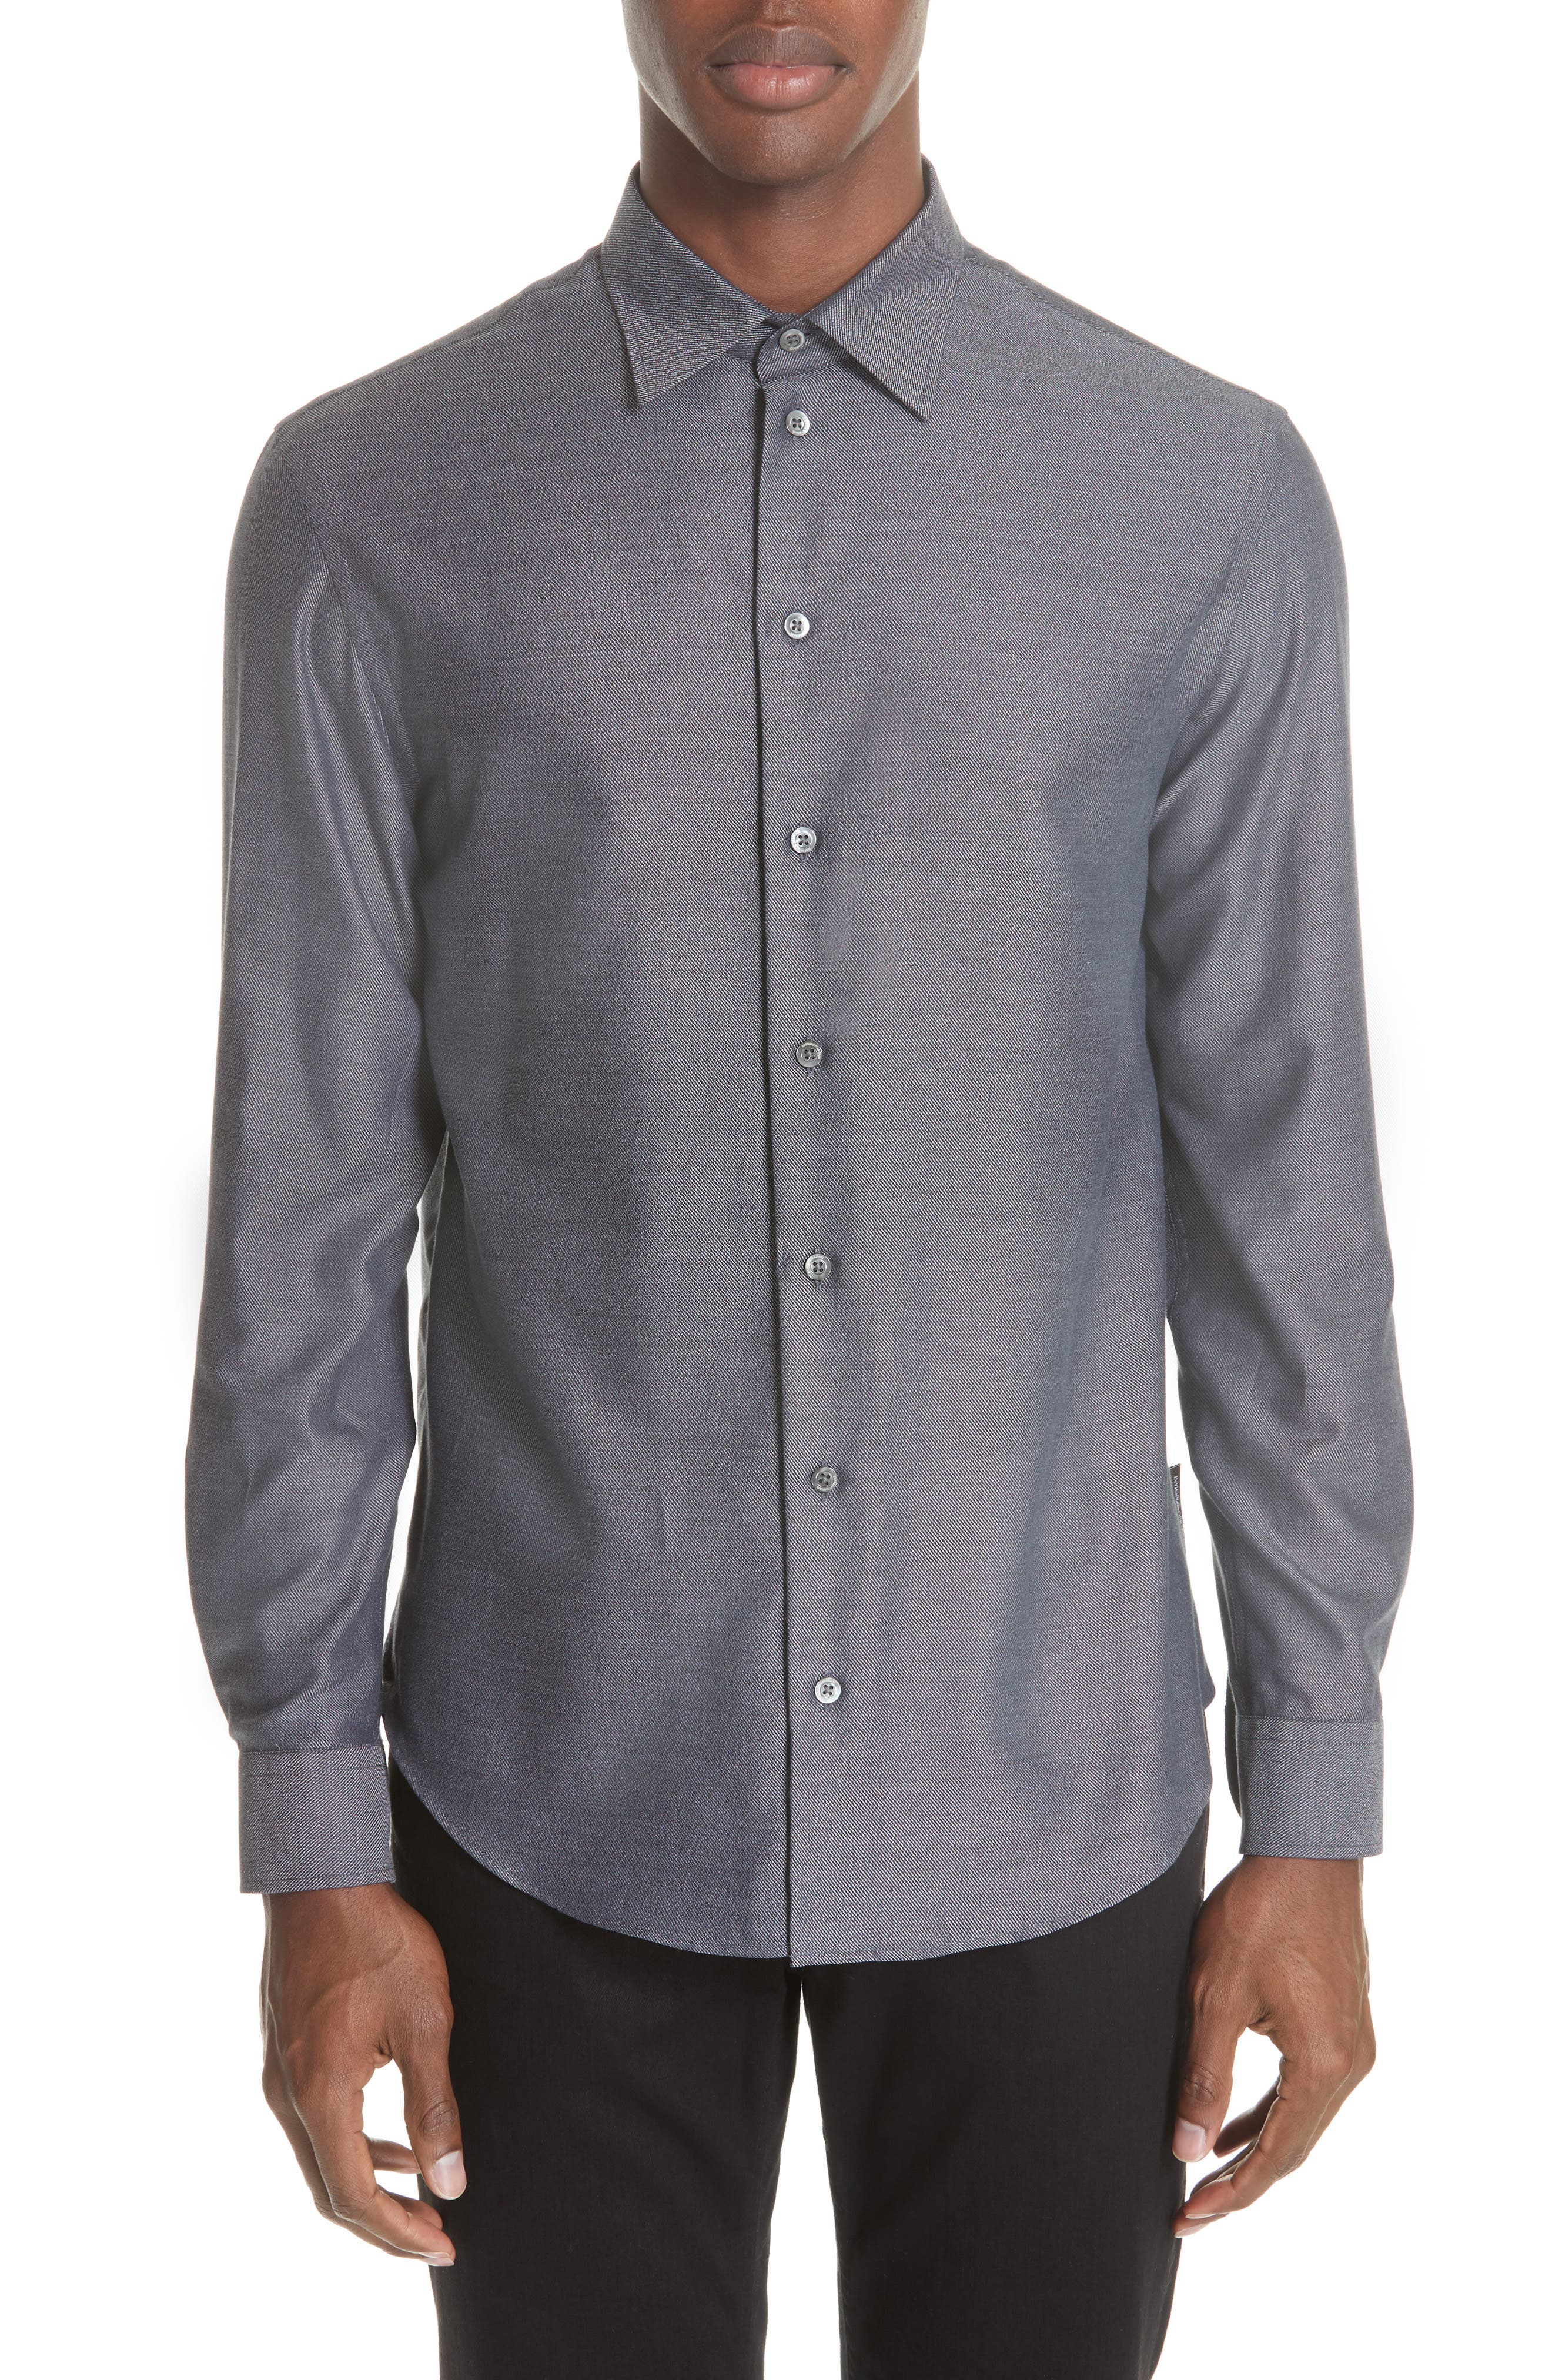 EMPORIO ARMANI Men'S Long-Sleeve Button-Front Melange Twill Woven Shirt in Grey Multi